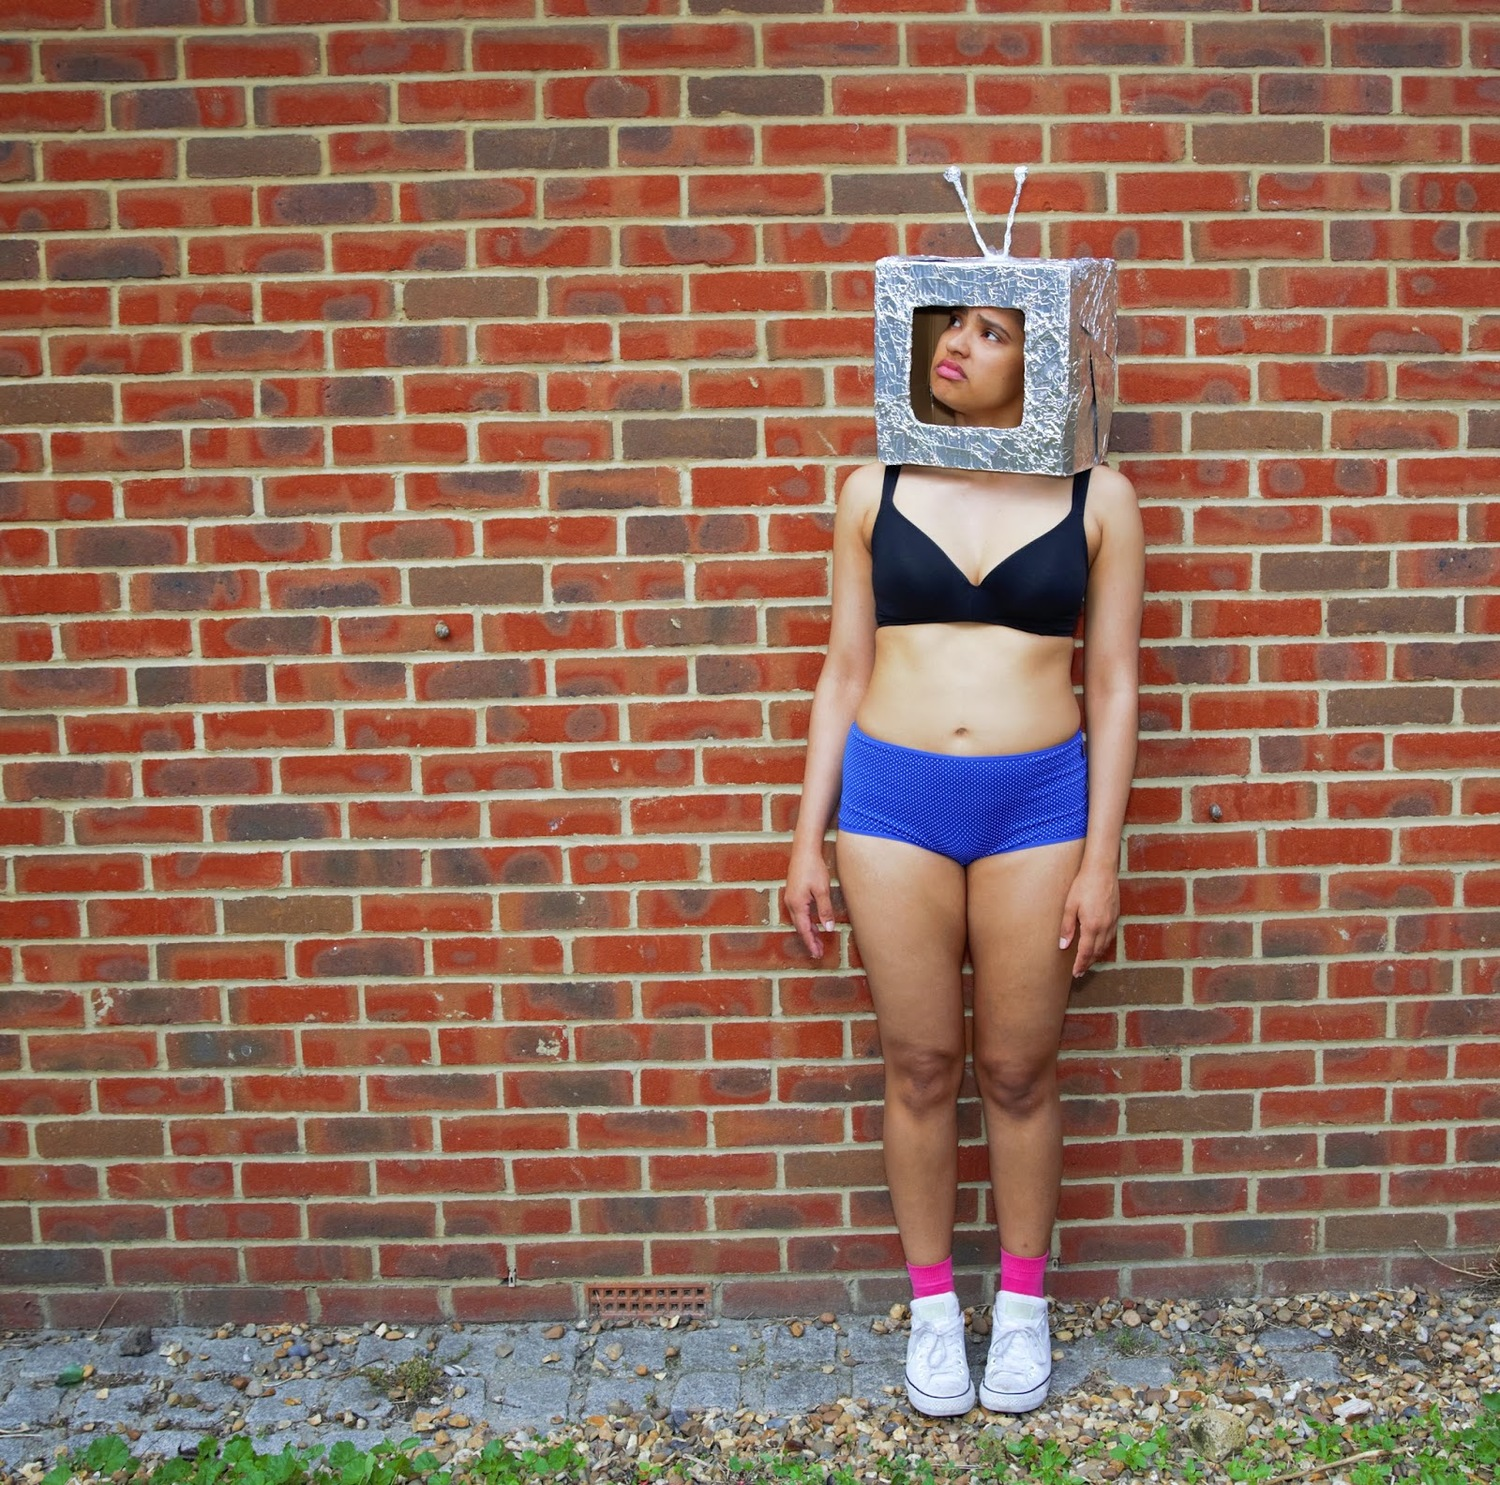 BWW Review: A ROBOT IN HUMAN SKIN, The Vaults